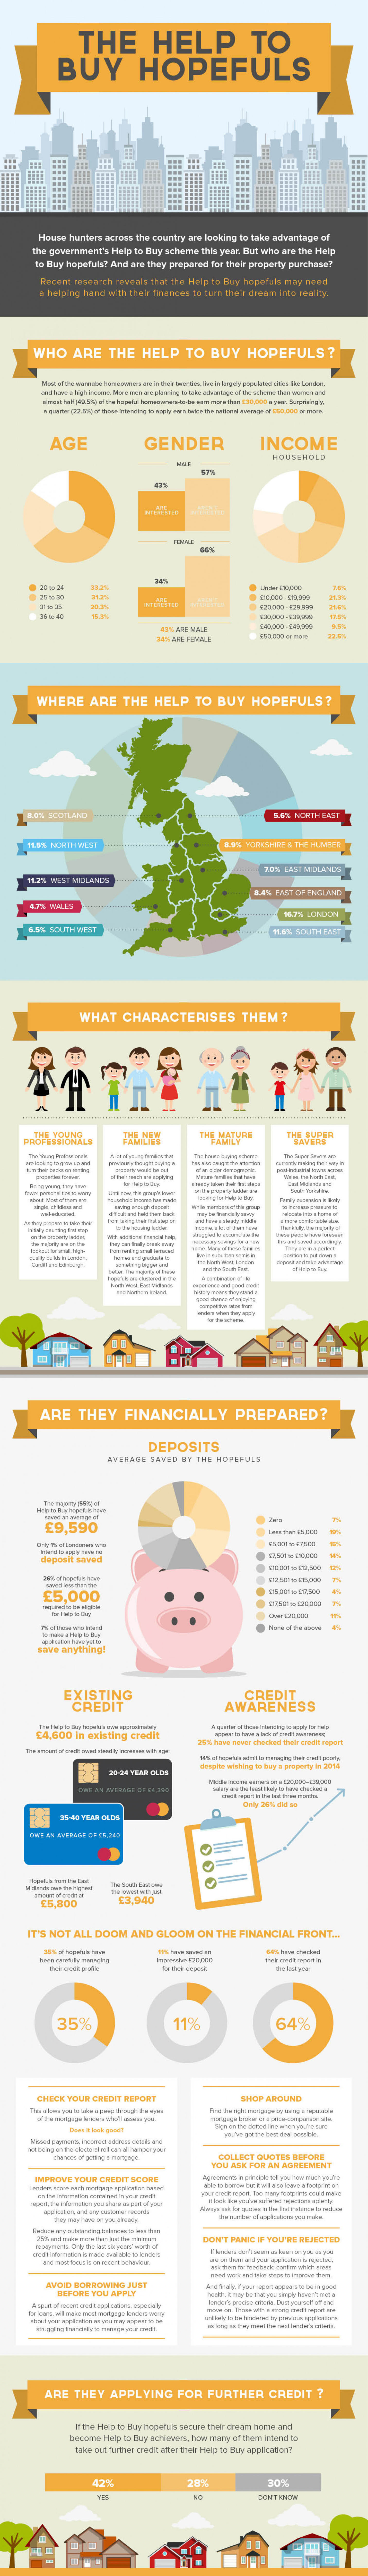 The Help to Buy Hopefuls Infographic